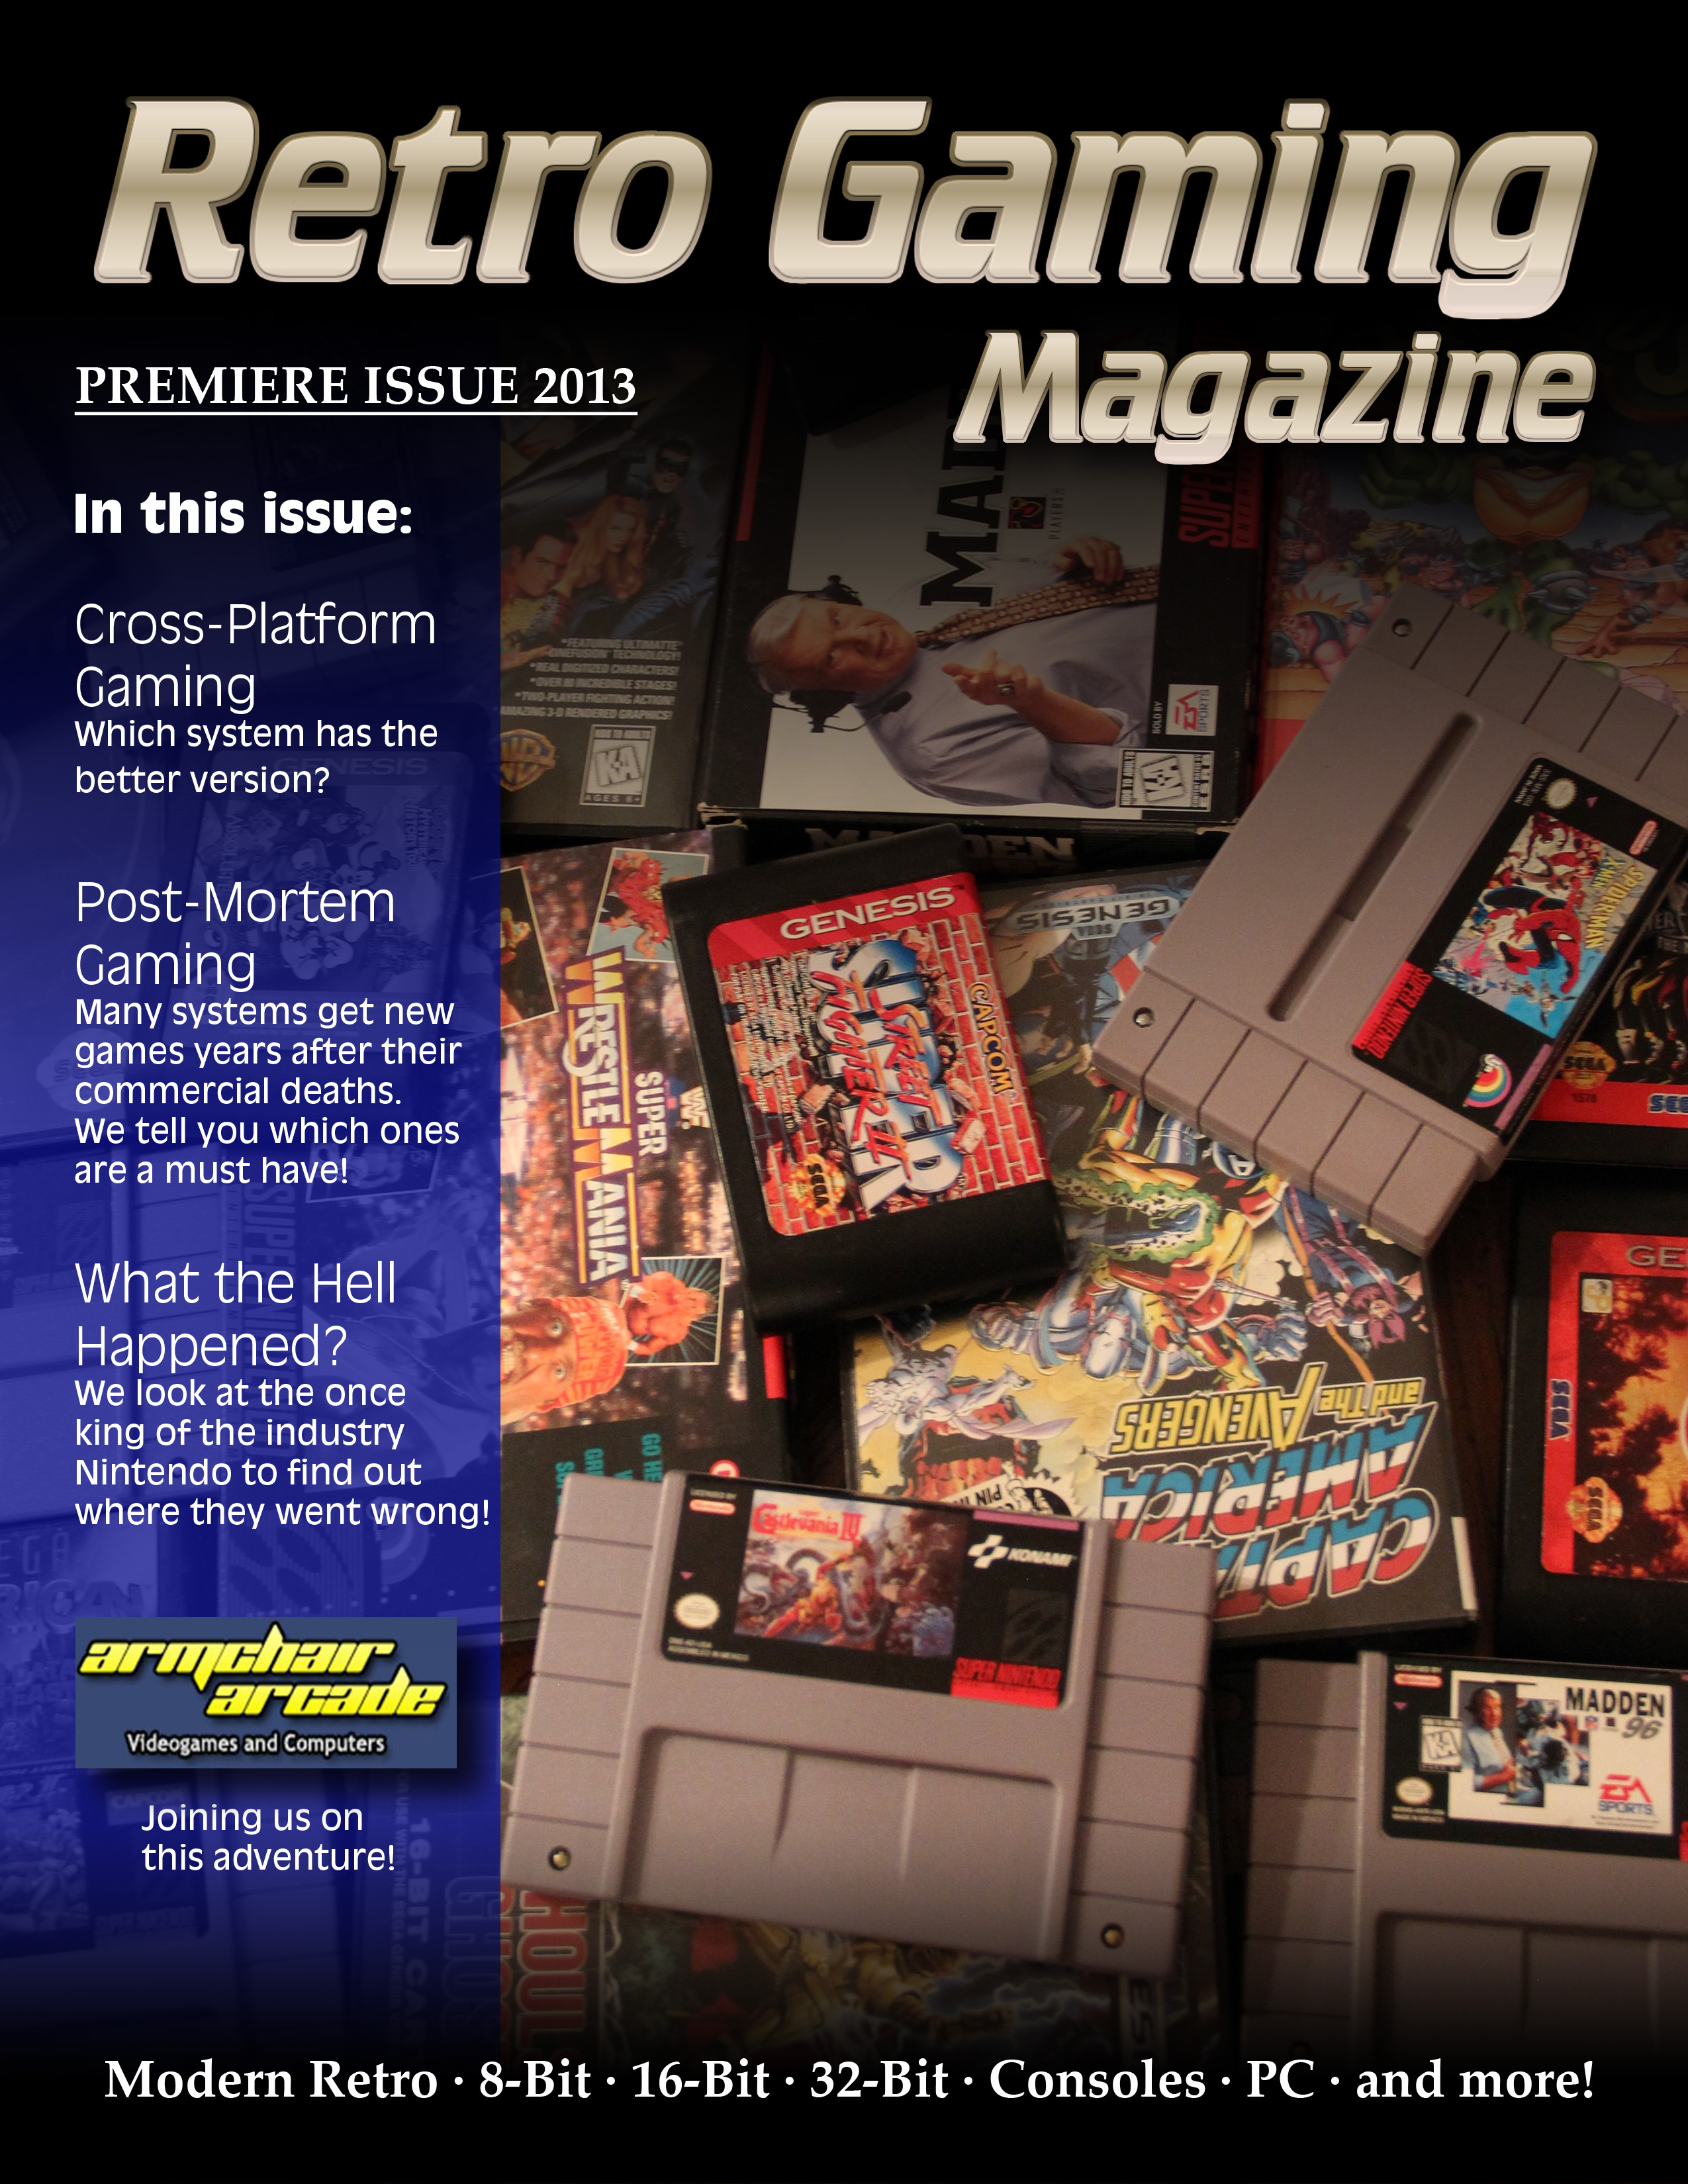 Retro Gaming Magazine Launching Soon - Gaming Publications